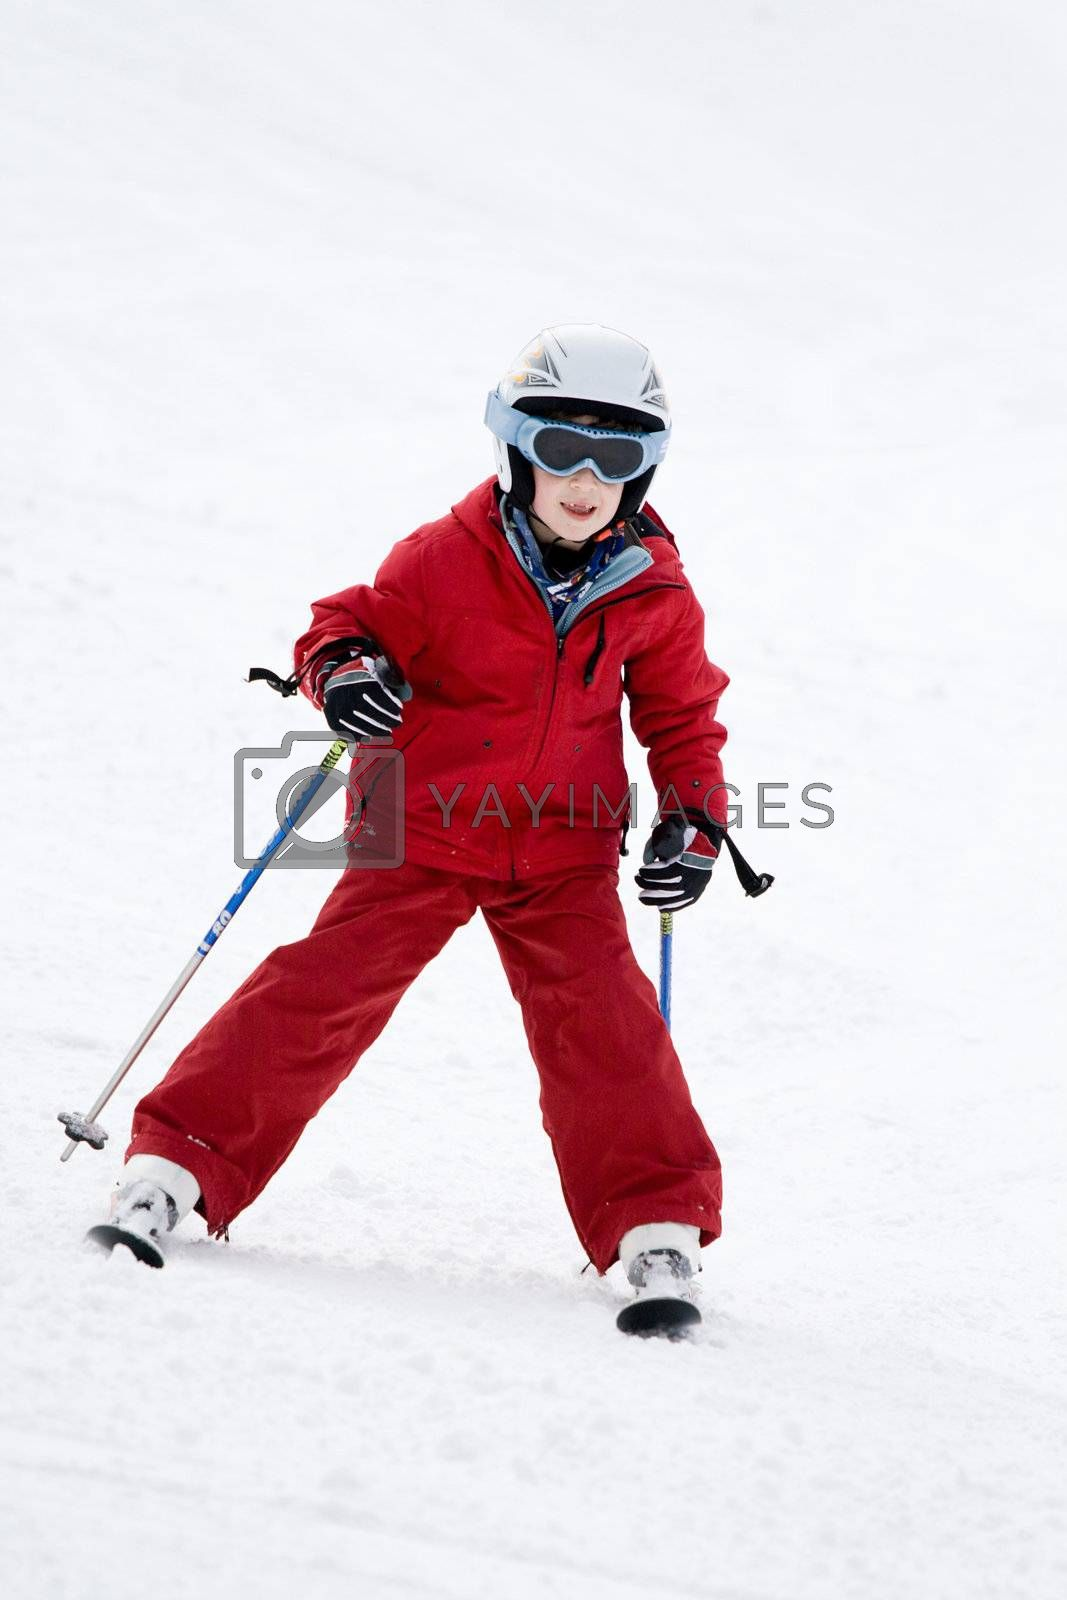 Smiling young boy skiing down a snowy slope